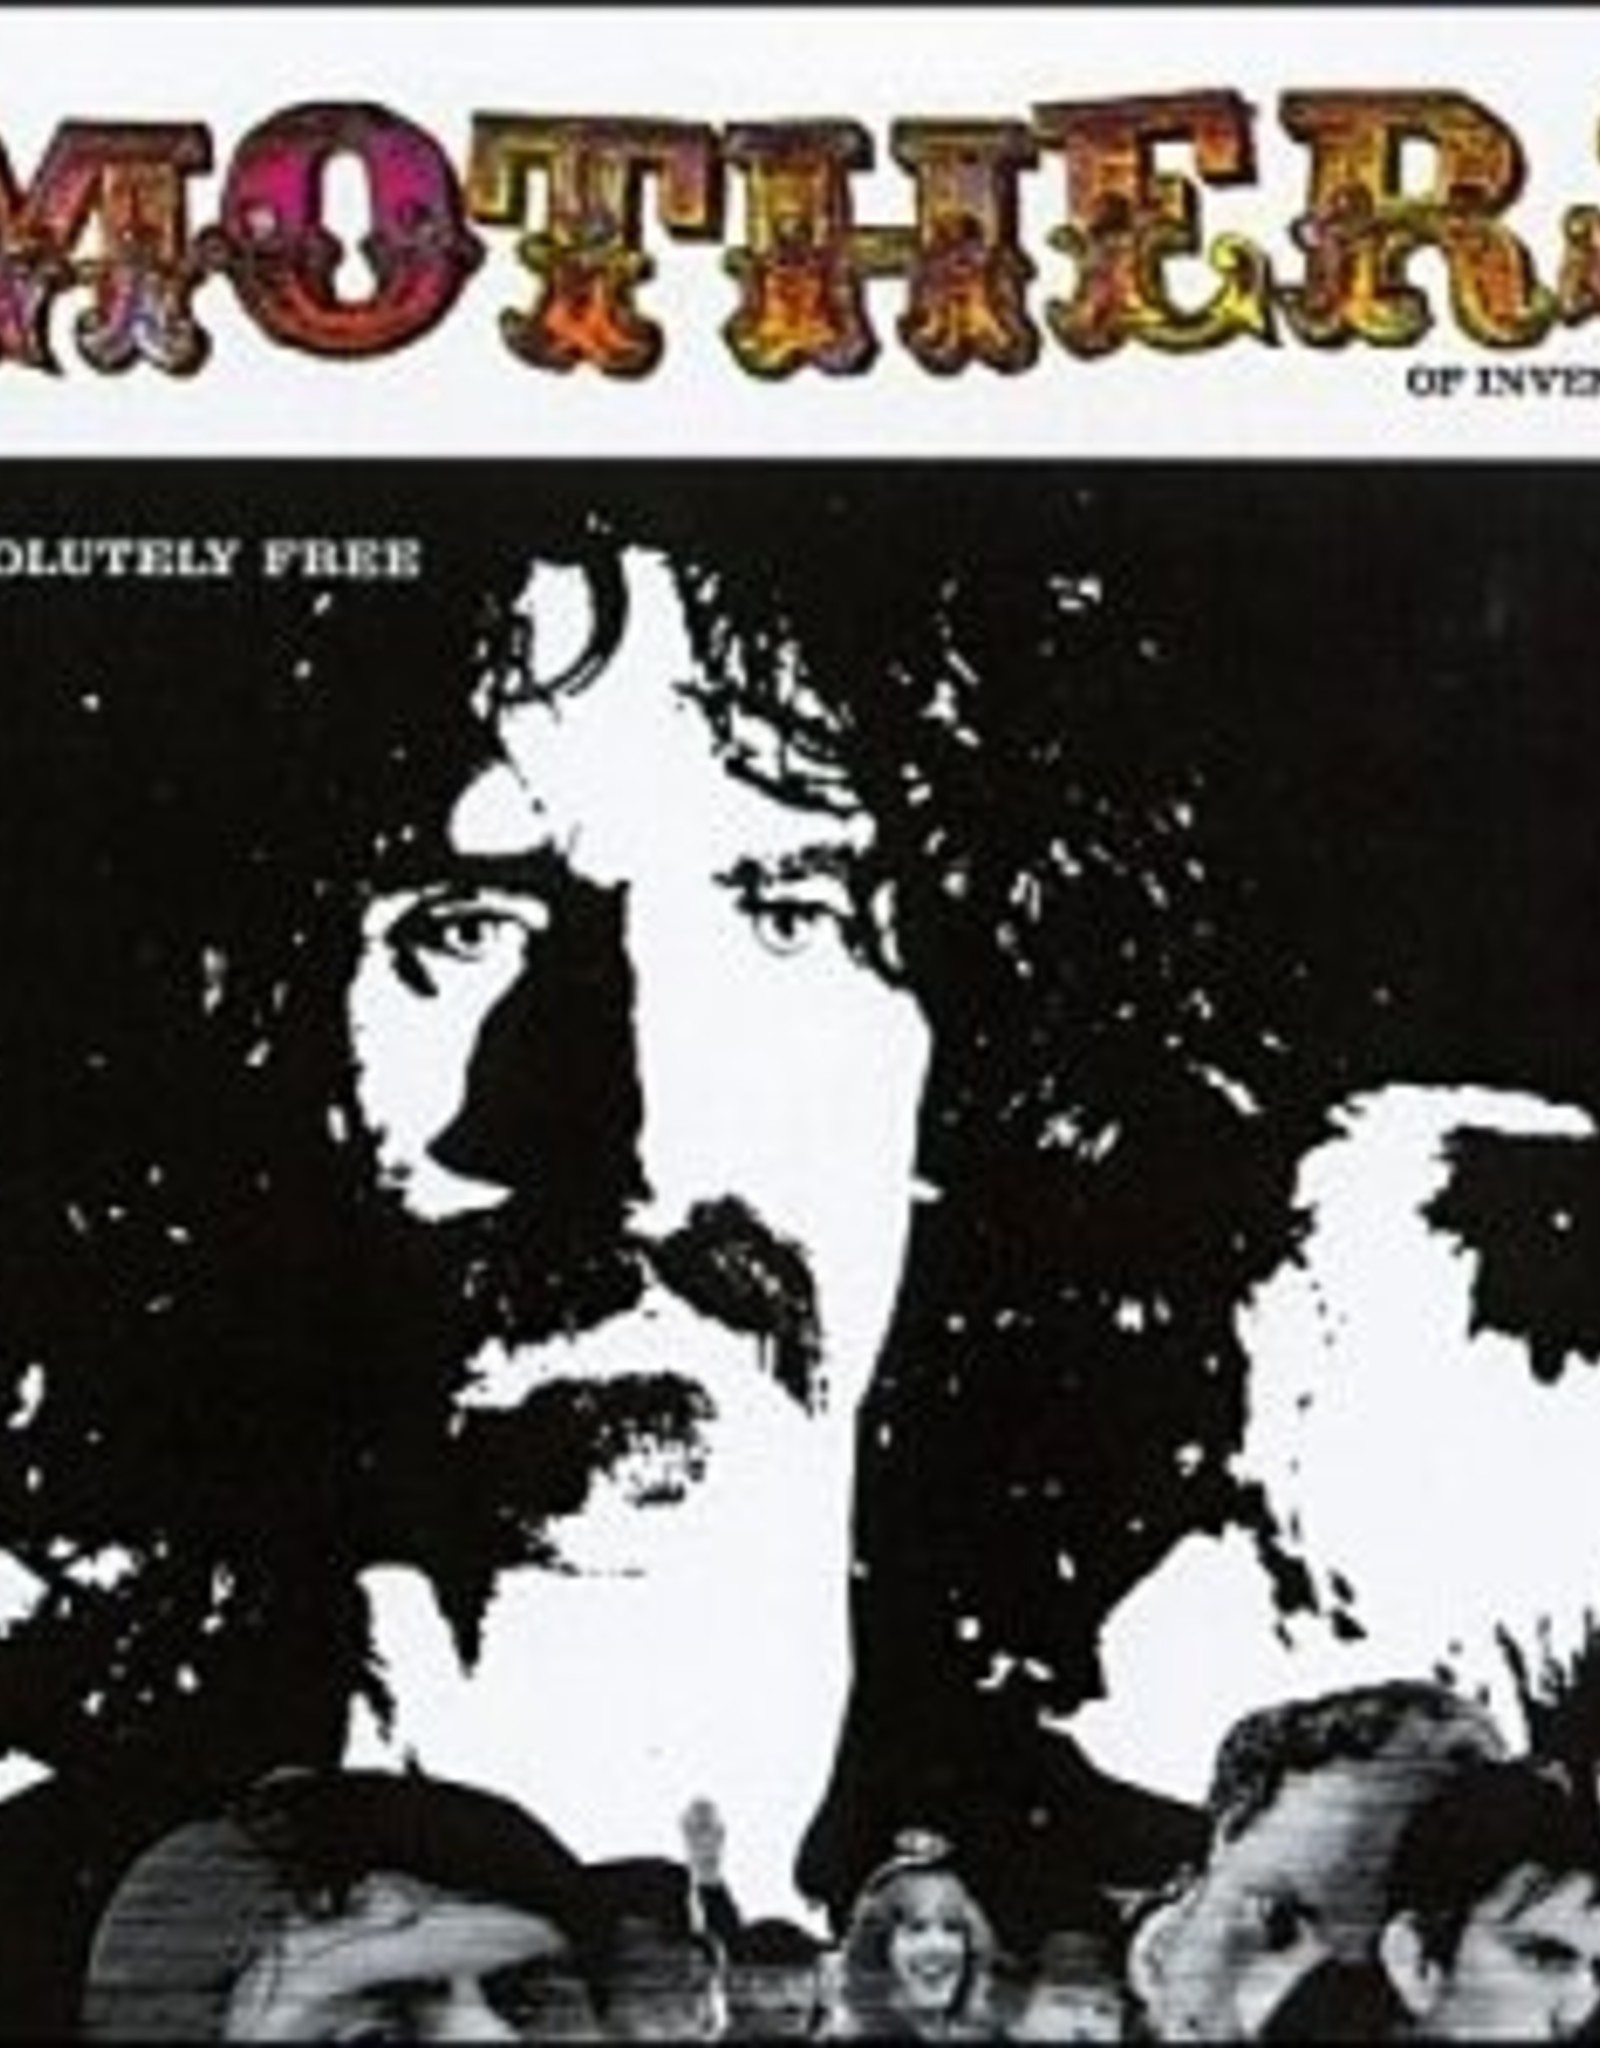 Frank Zappa - Absolutely Free